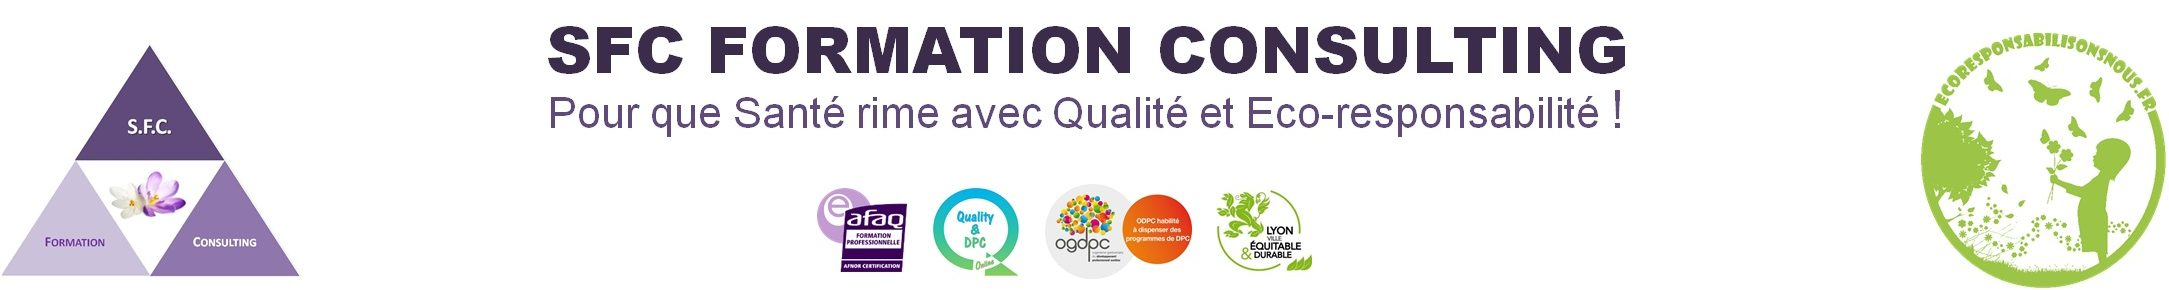 cropped-SFC-Formation-Consulting-Pharmaciens-laboratoires-Ordre-OGDPC-COFRAC9-1.jpg